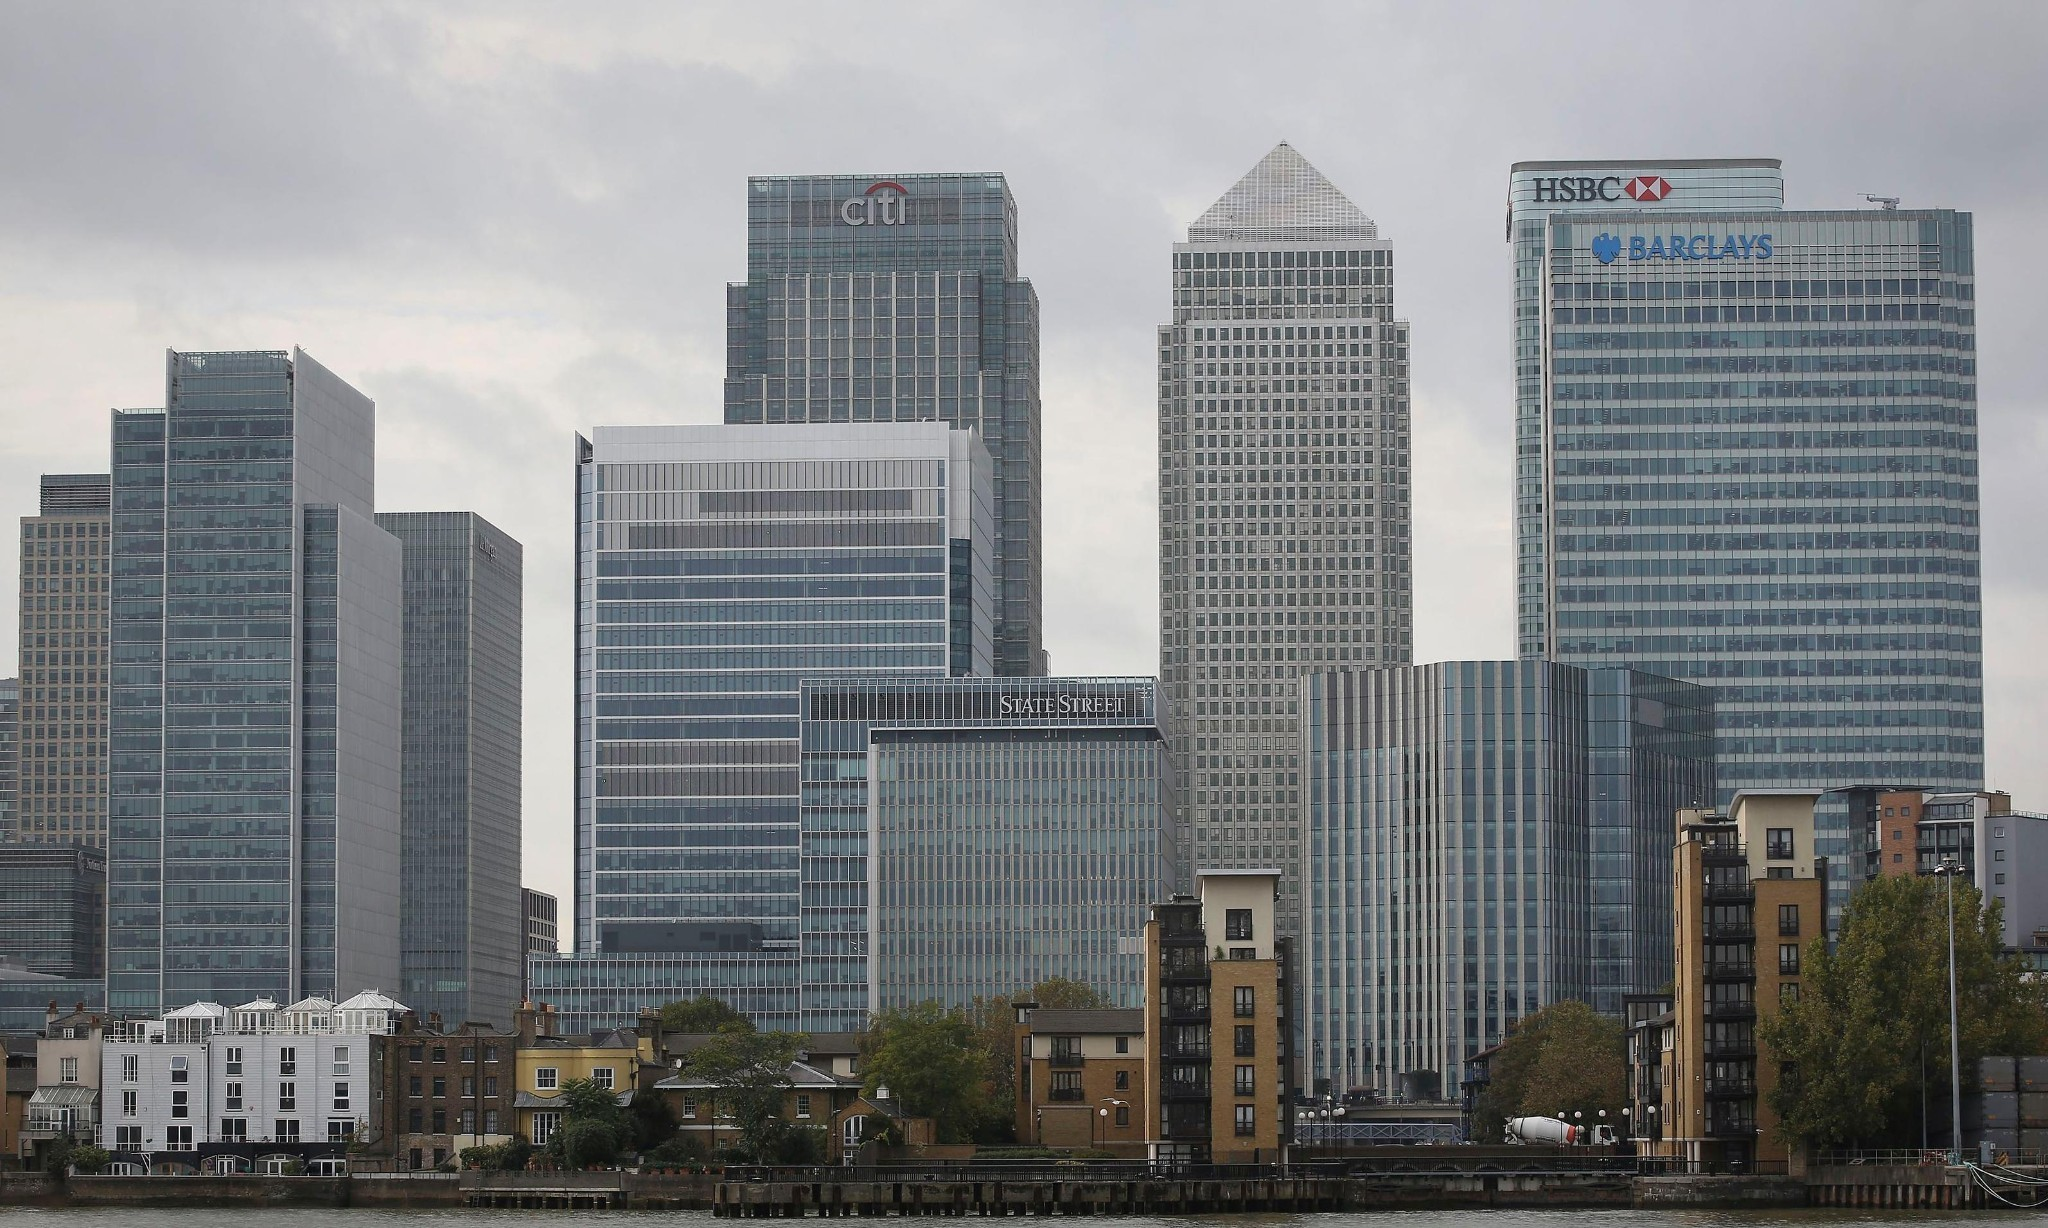 City banks row back on Brexit doom and gloom forecasts